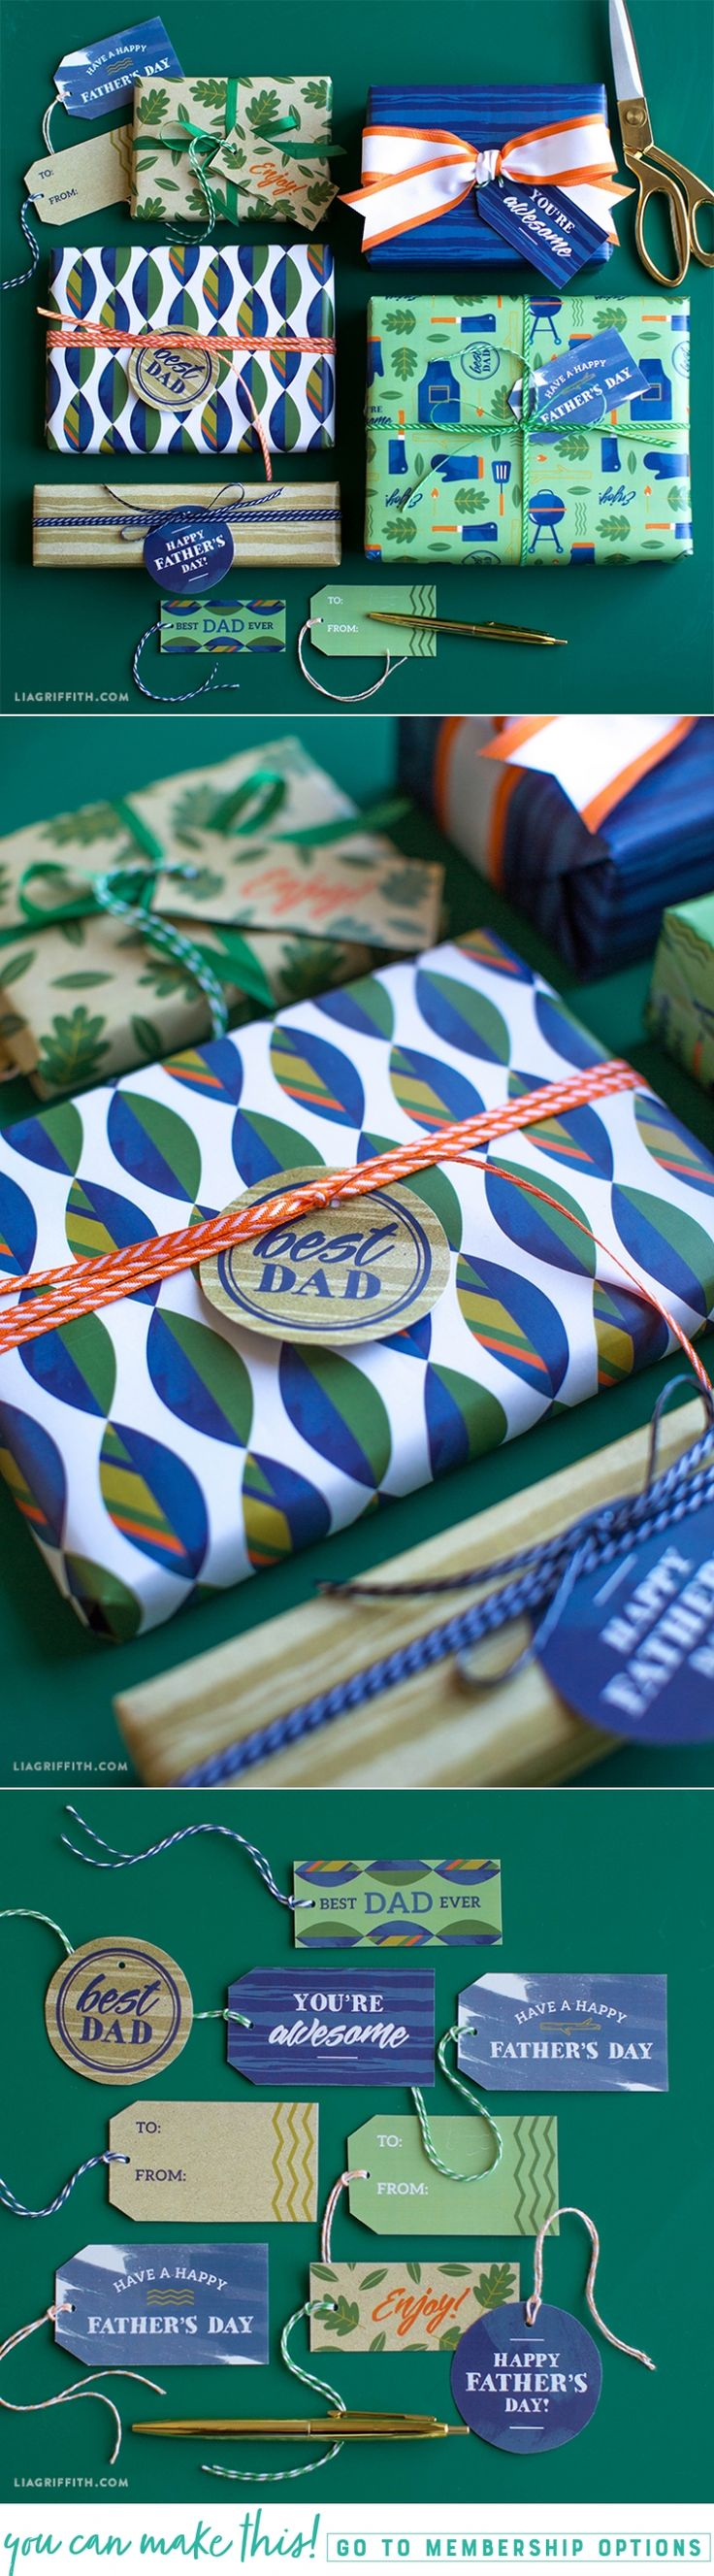 Printable #giftwrap for #FathersDay at www.LiaGriffith.com: